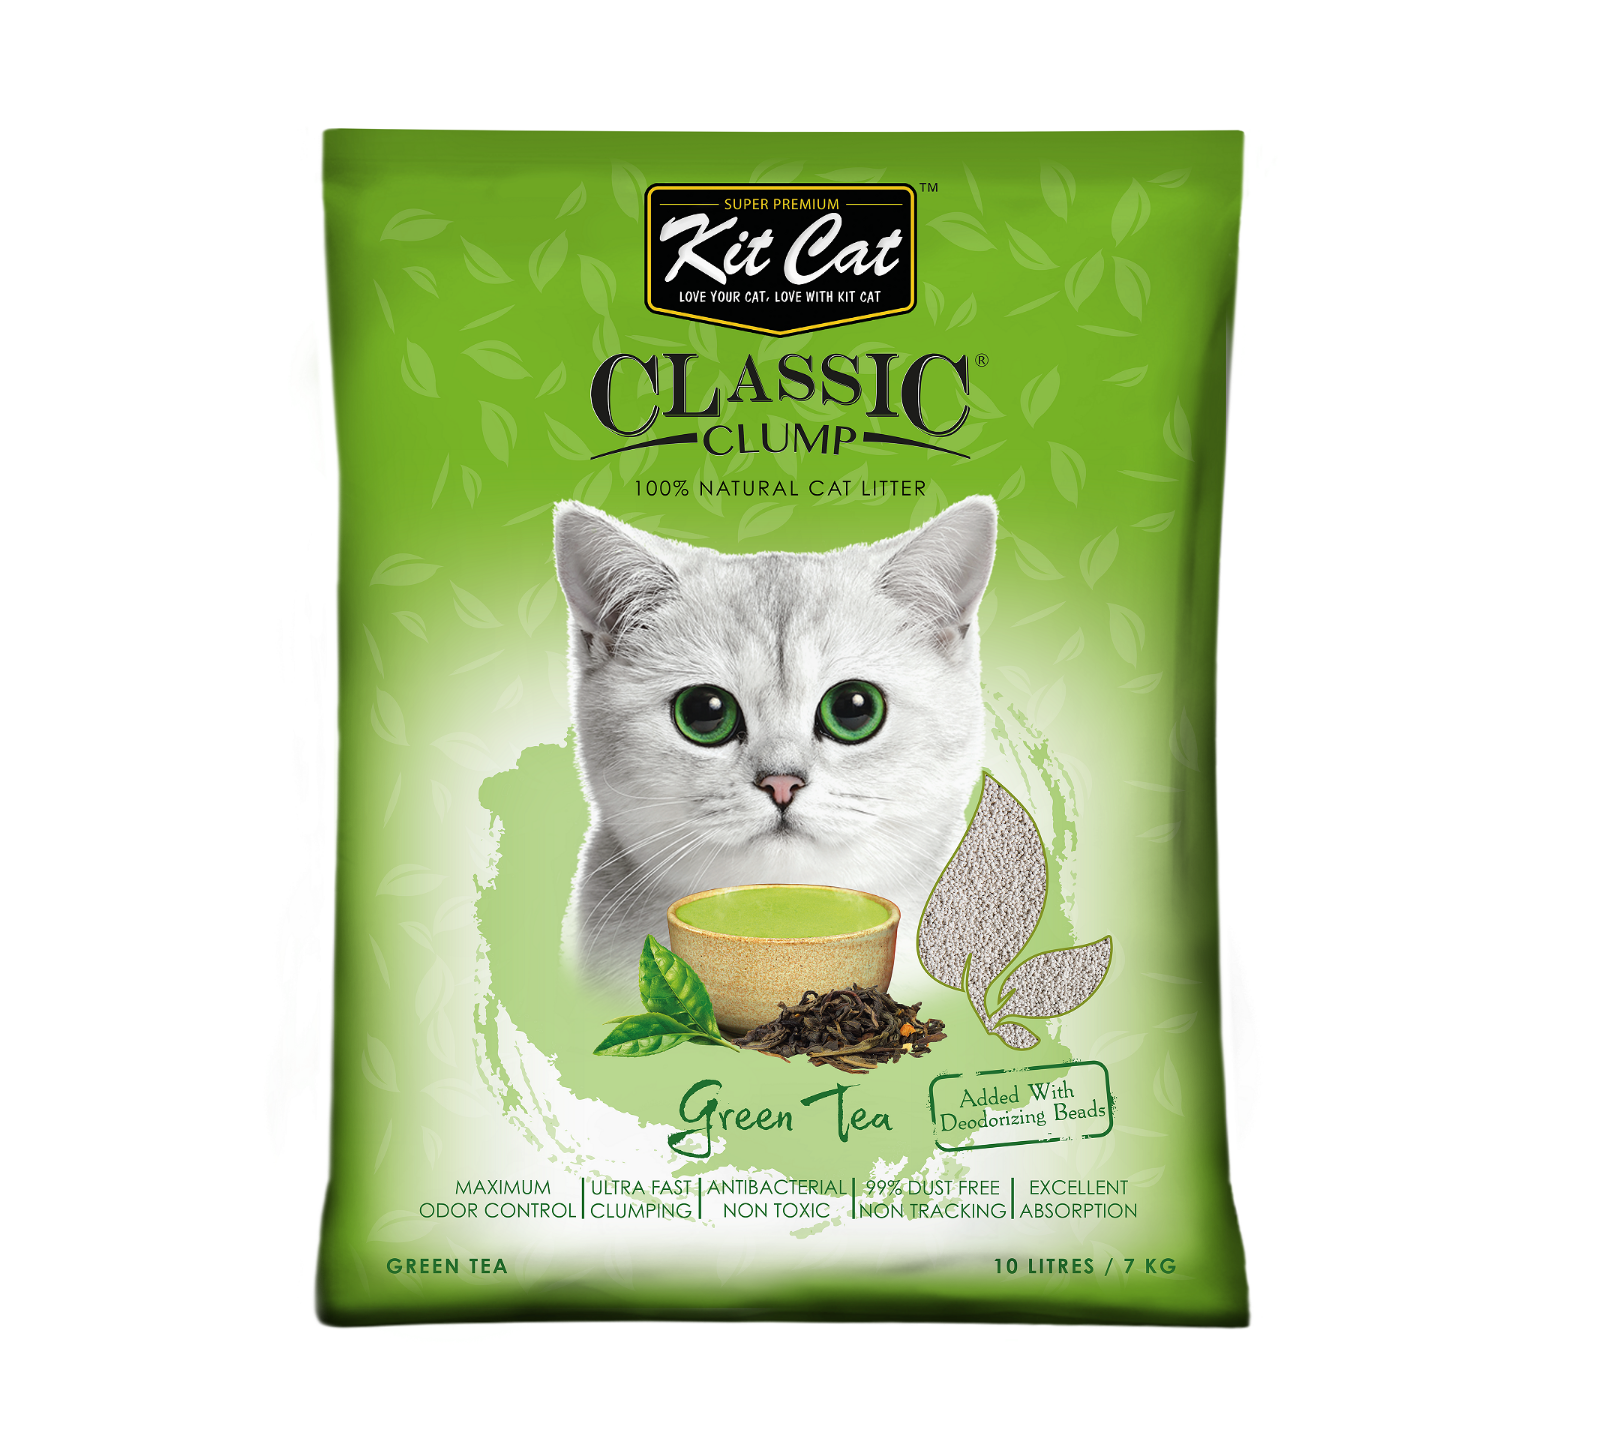 Kit Cat Trà Xanh_XANH_GreenTea 10L